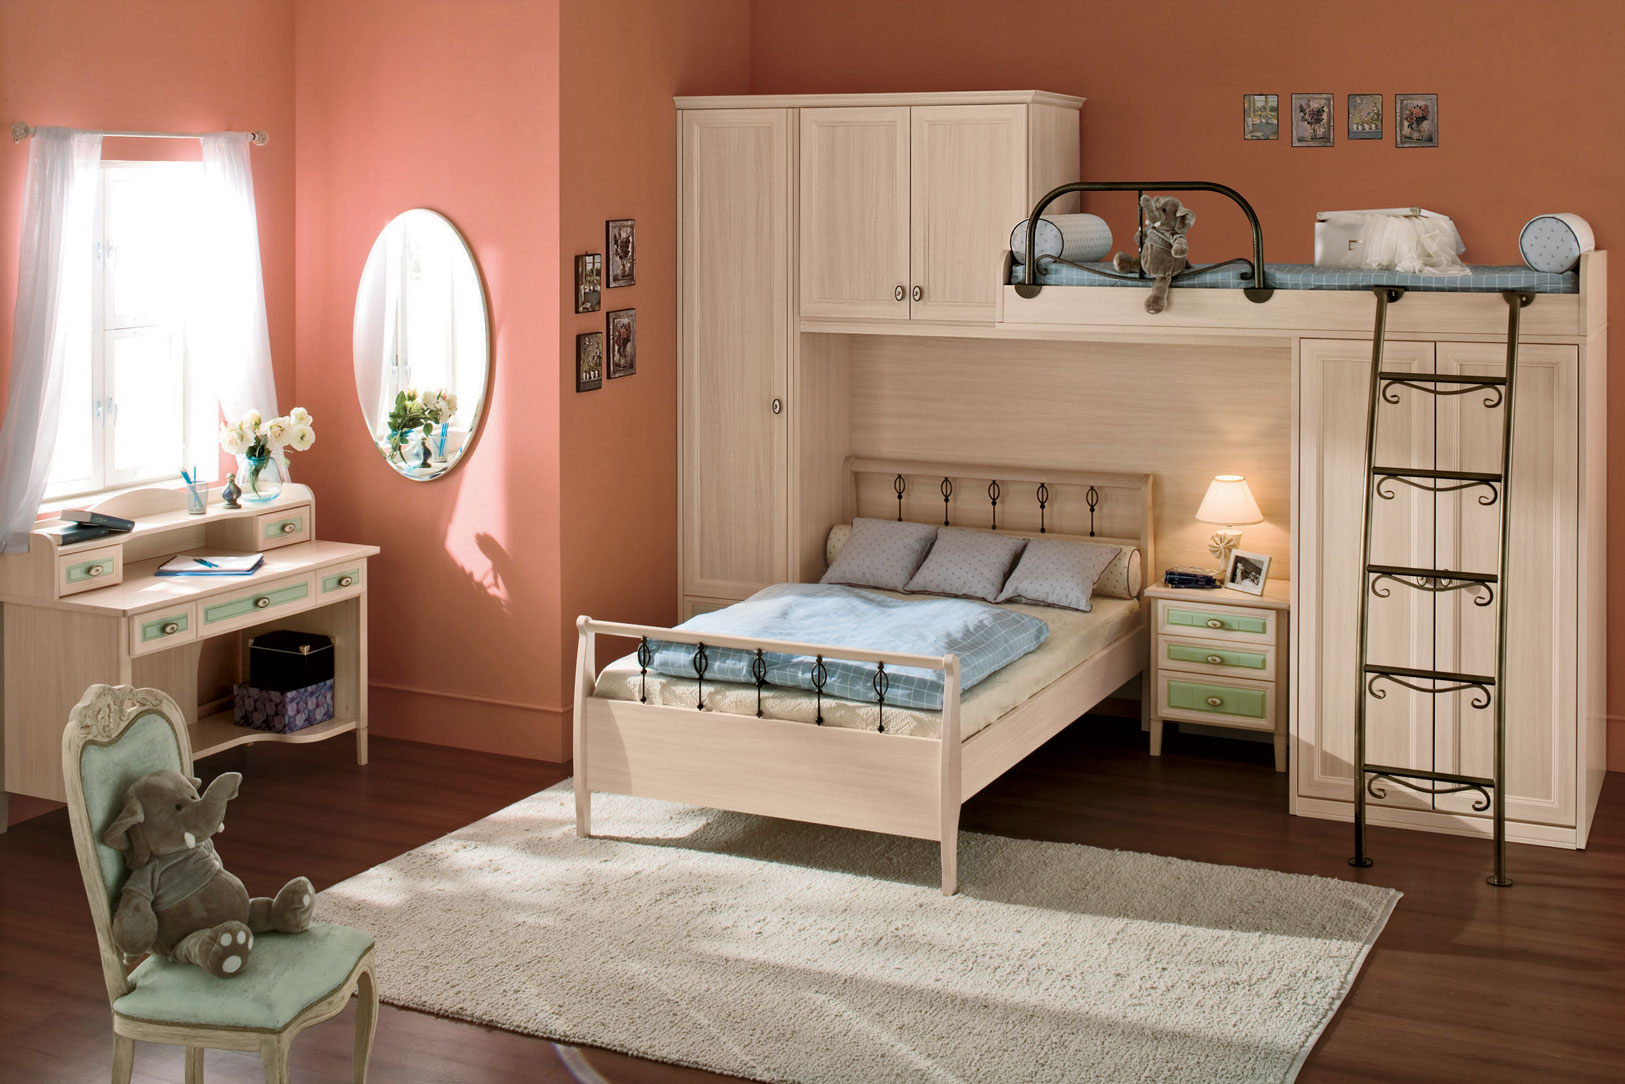 kids bedroom furniture design ideas photo - 3